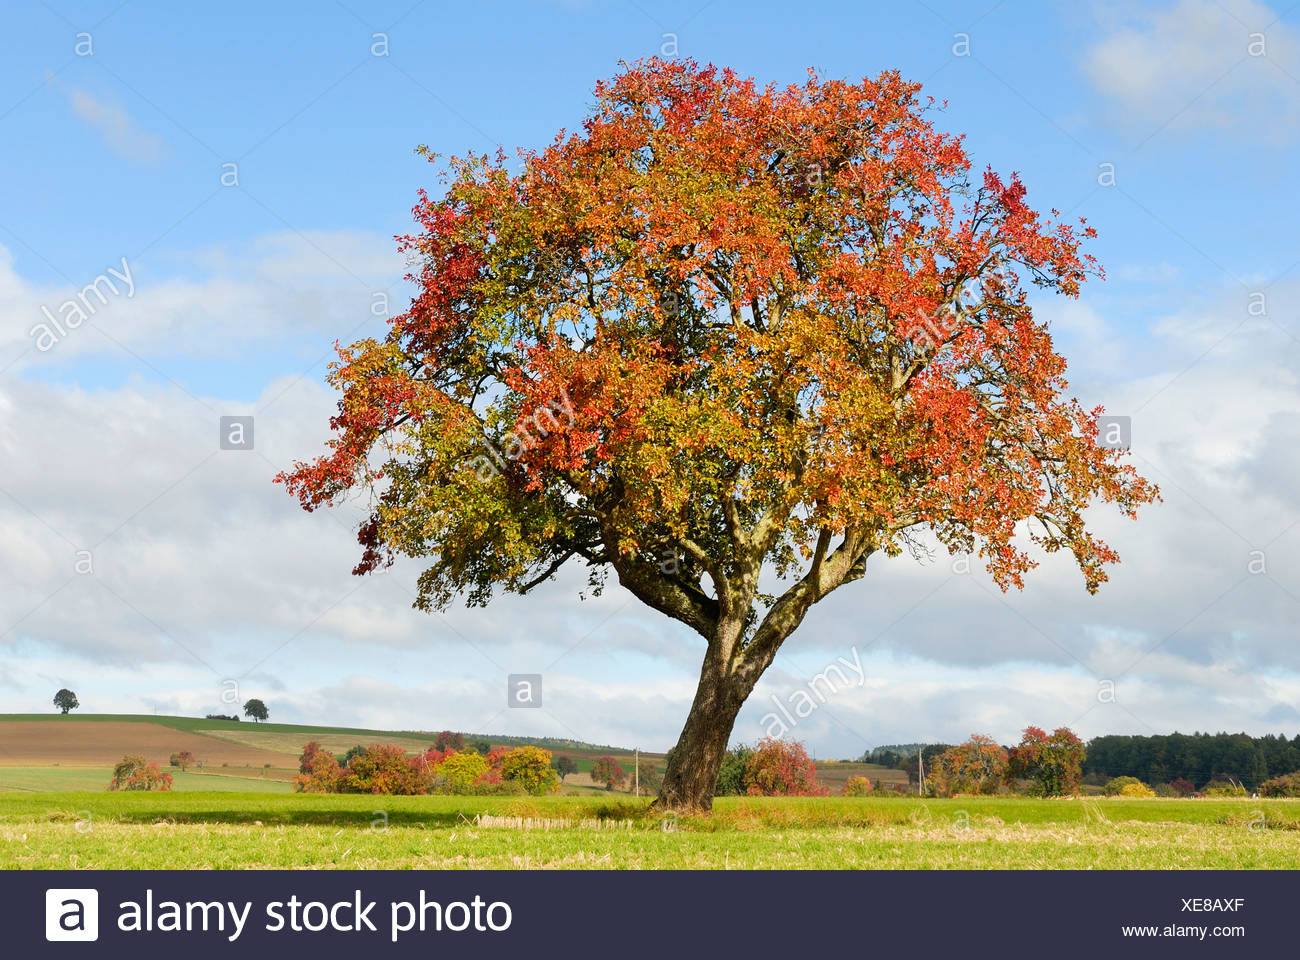 old apple tree in autumn colors stock photo 284155271 alamy